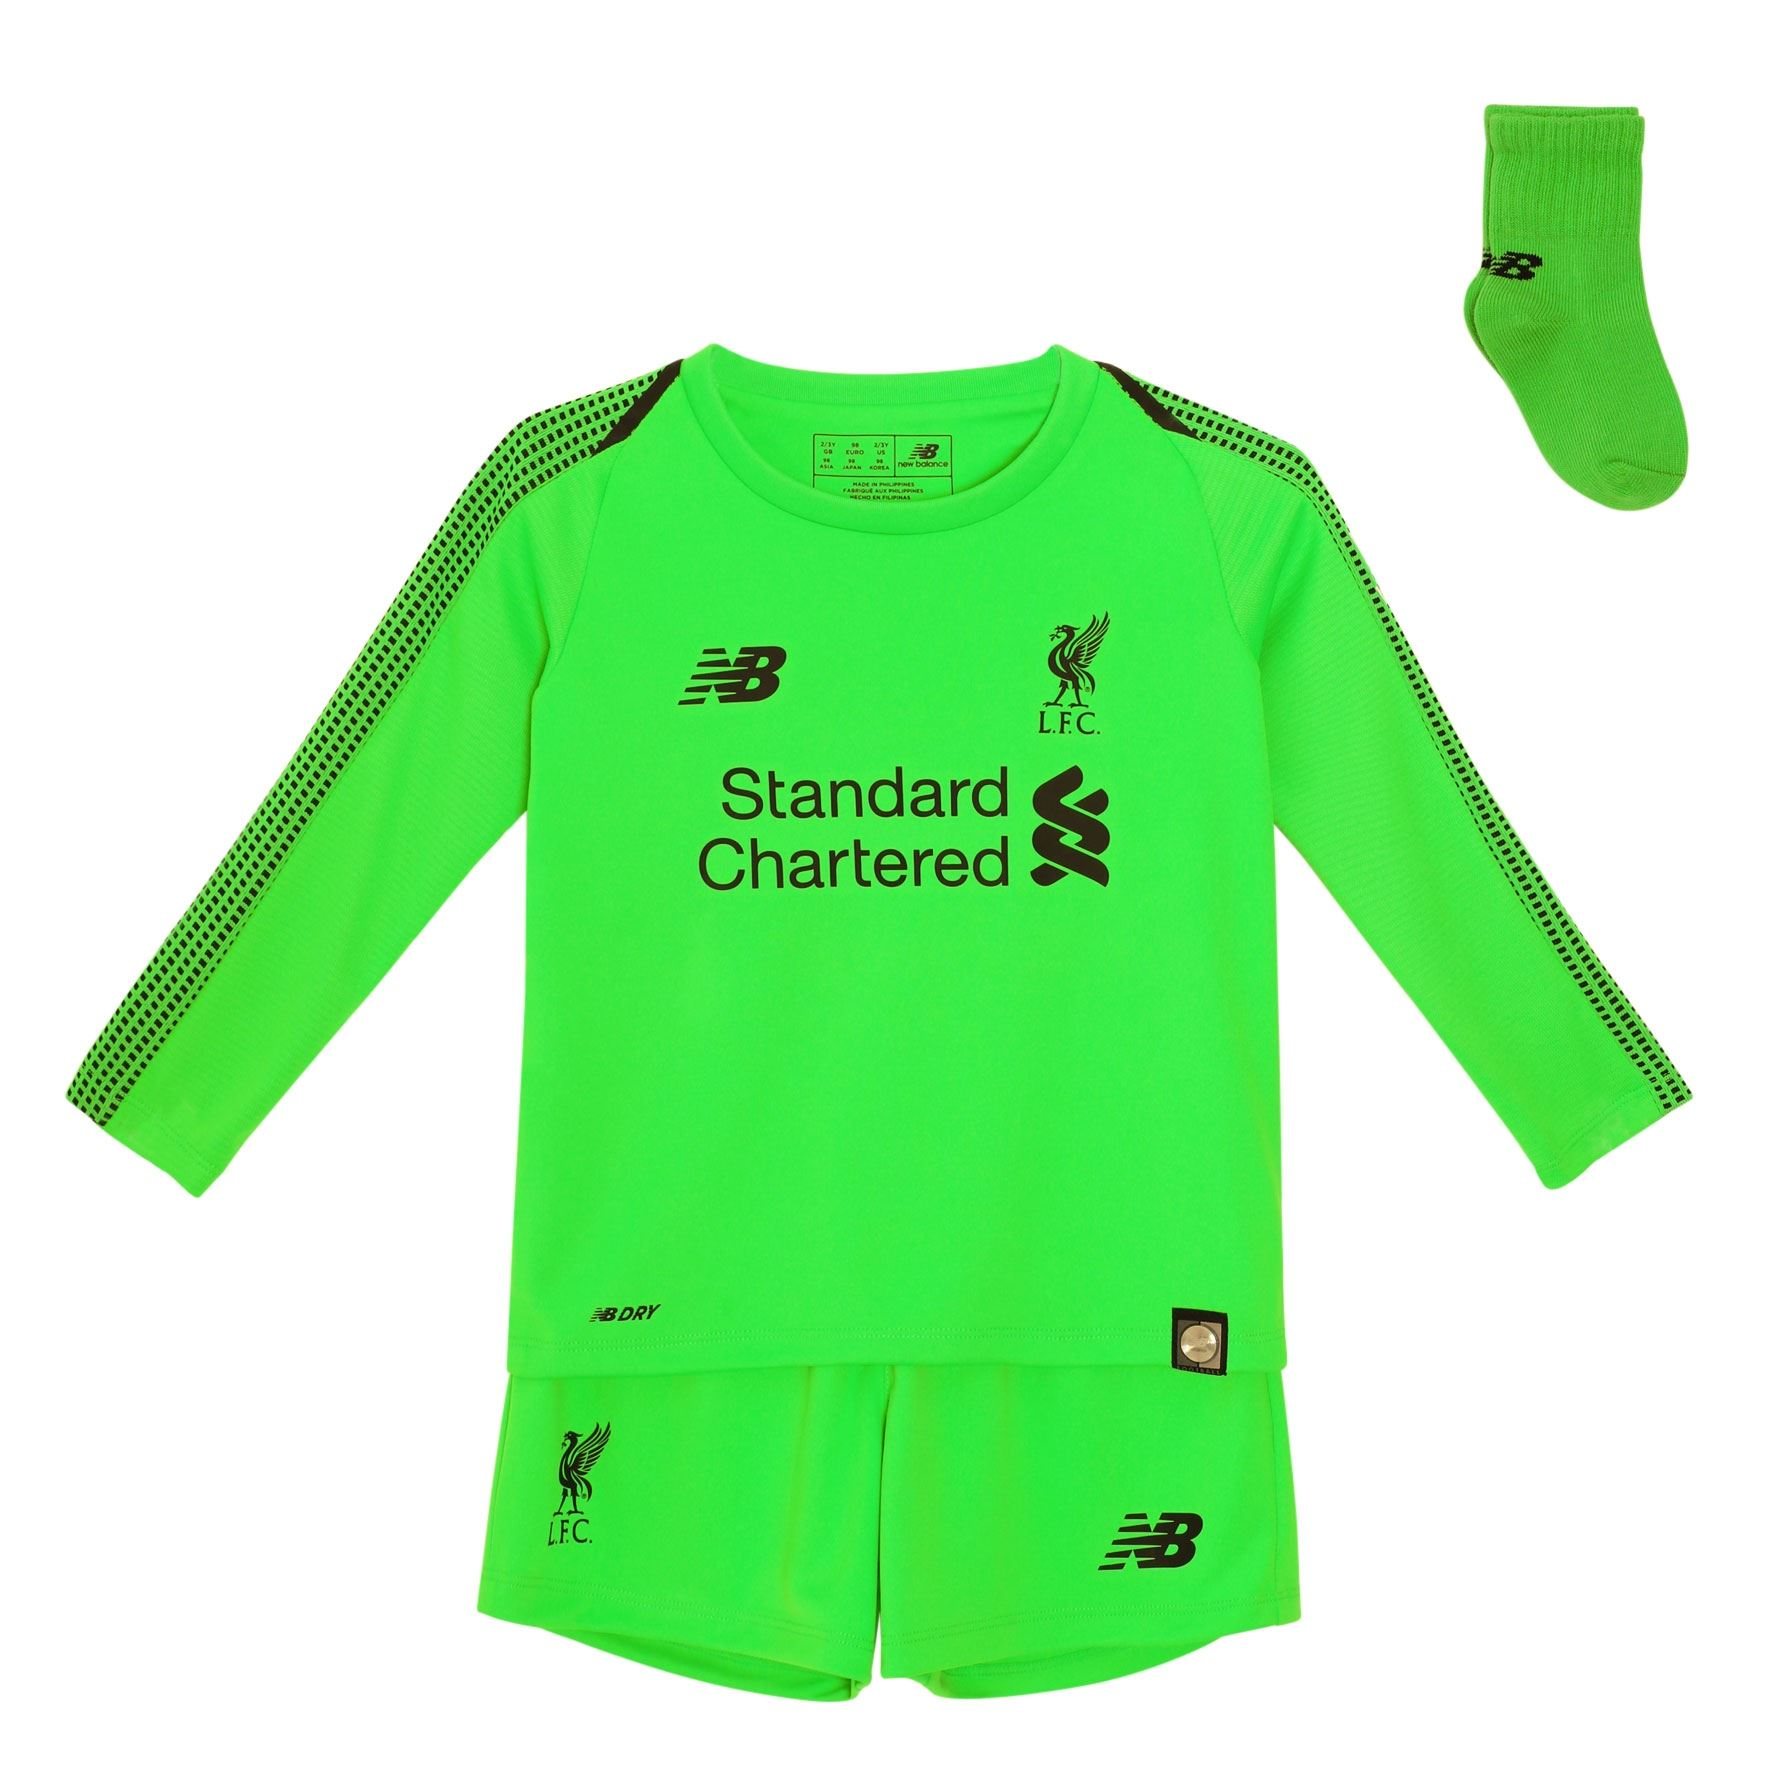 new product bb9f0 23a79 Details about Liverpool FC Baby Football Goalkeeper Away Kit 18/19 LFC  Official